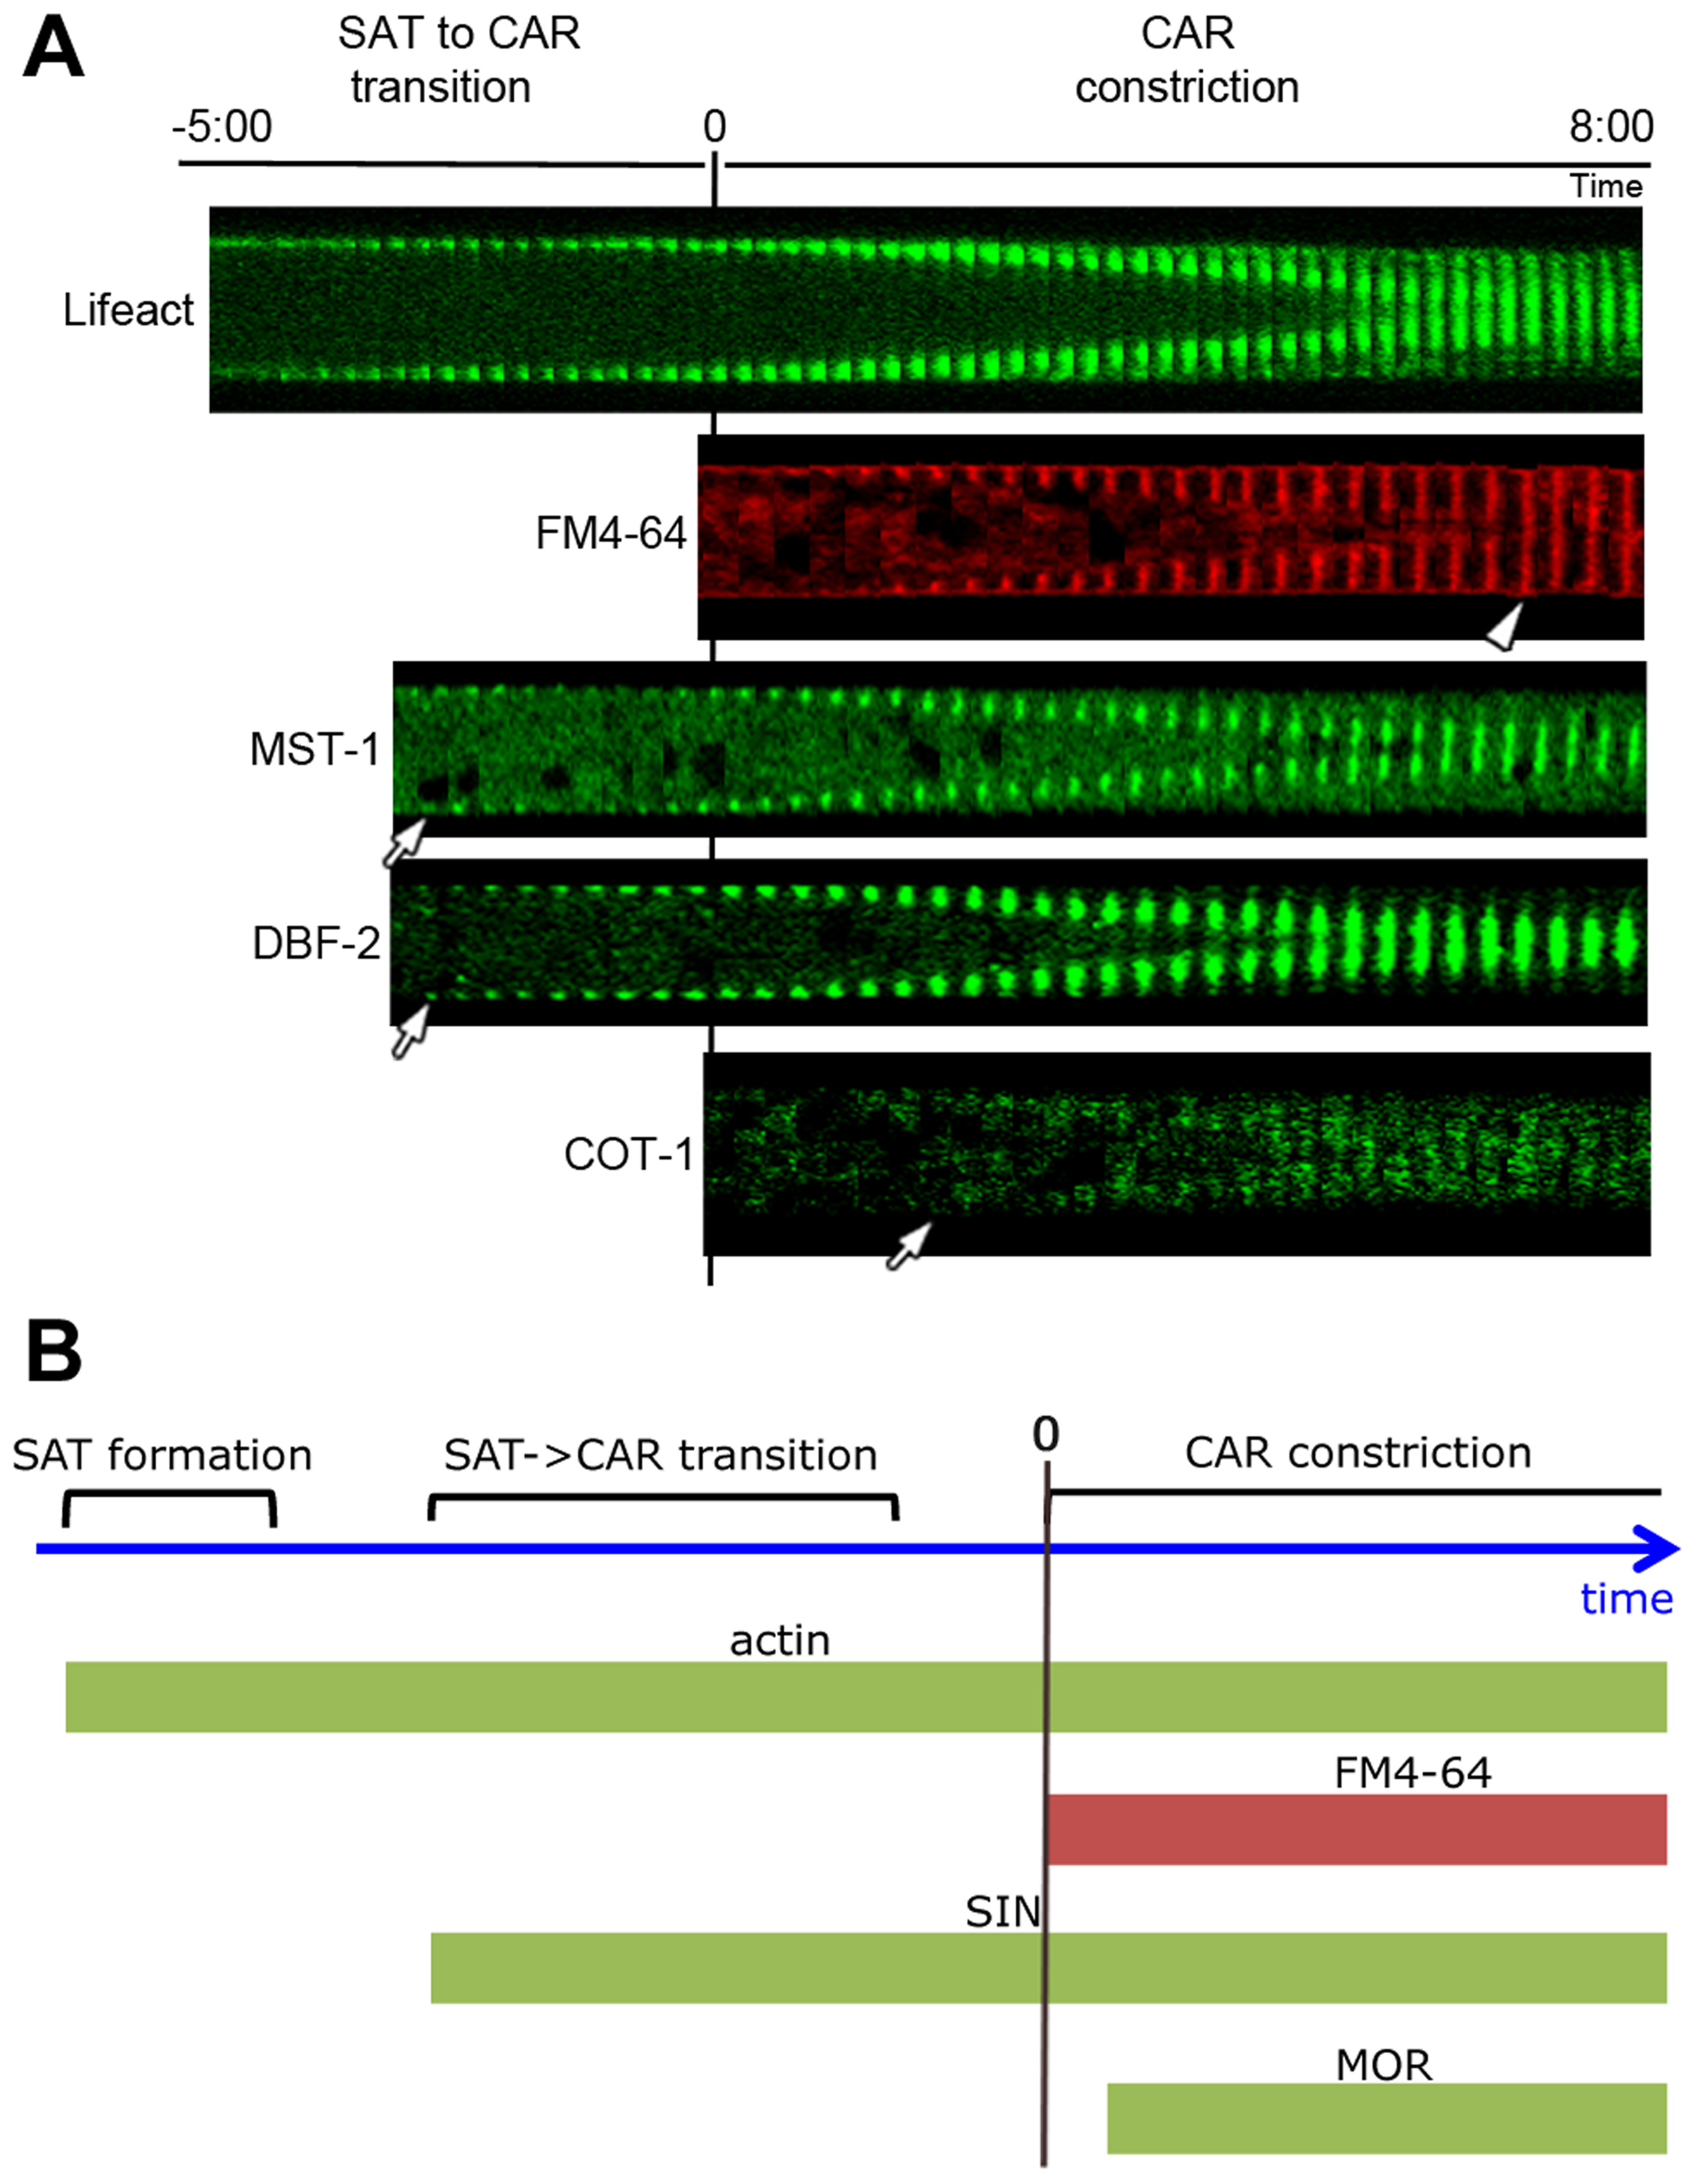 Kinetics of cortex association of SIN and MOR components DBF-2, MST-1 and COT-1 during septum formation.